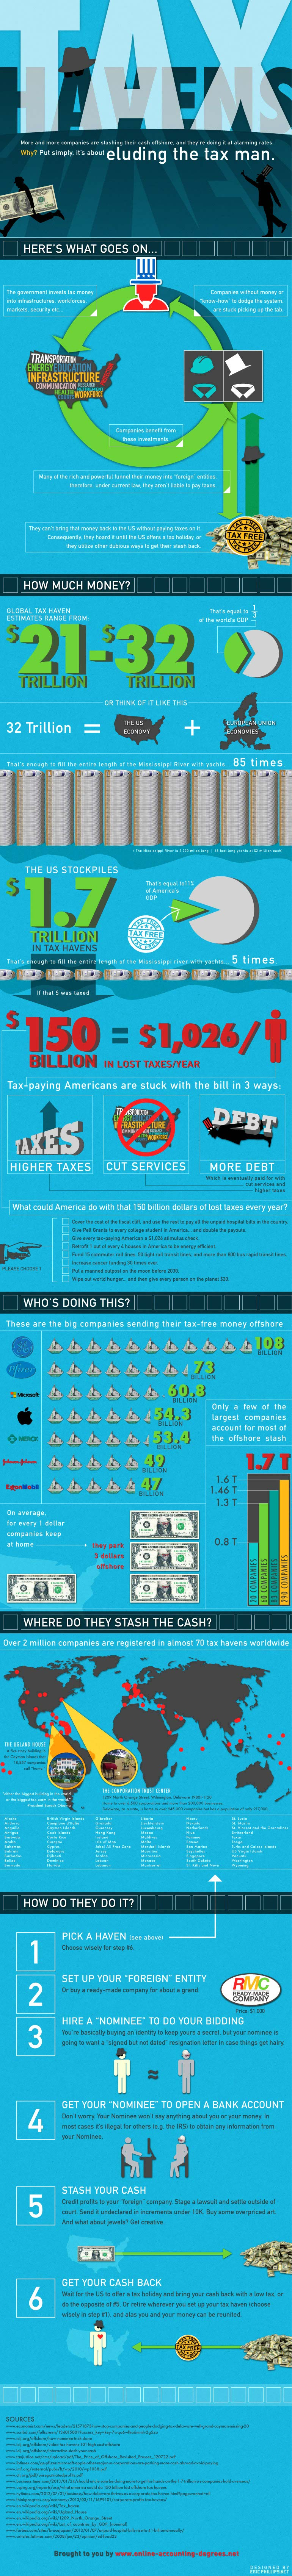 How Companies Evade Tax-Infographic